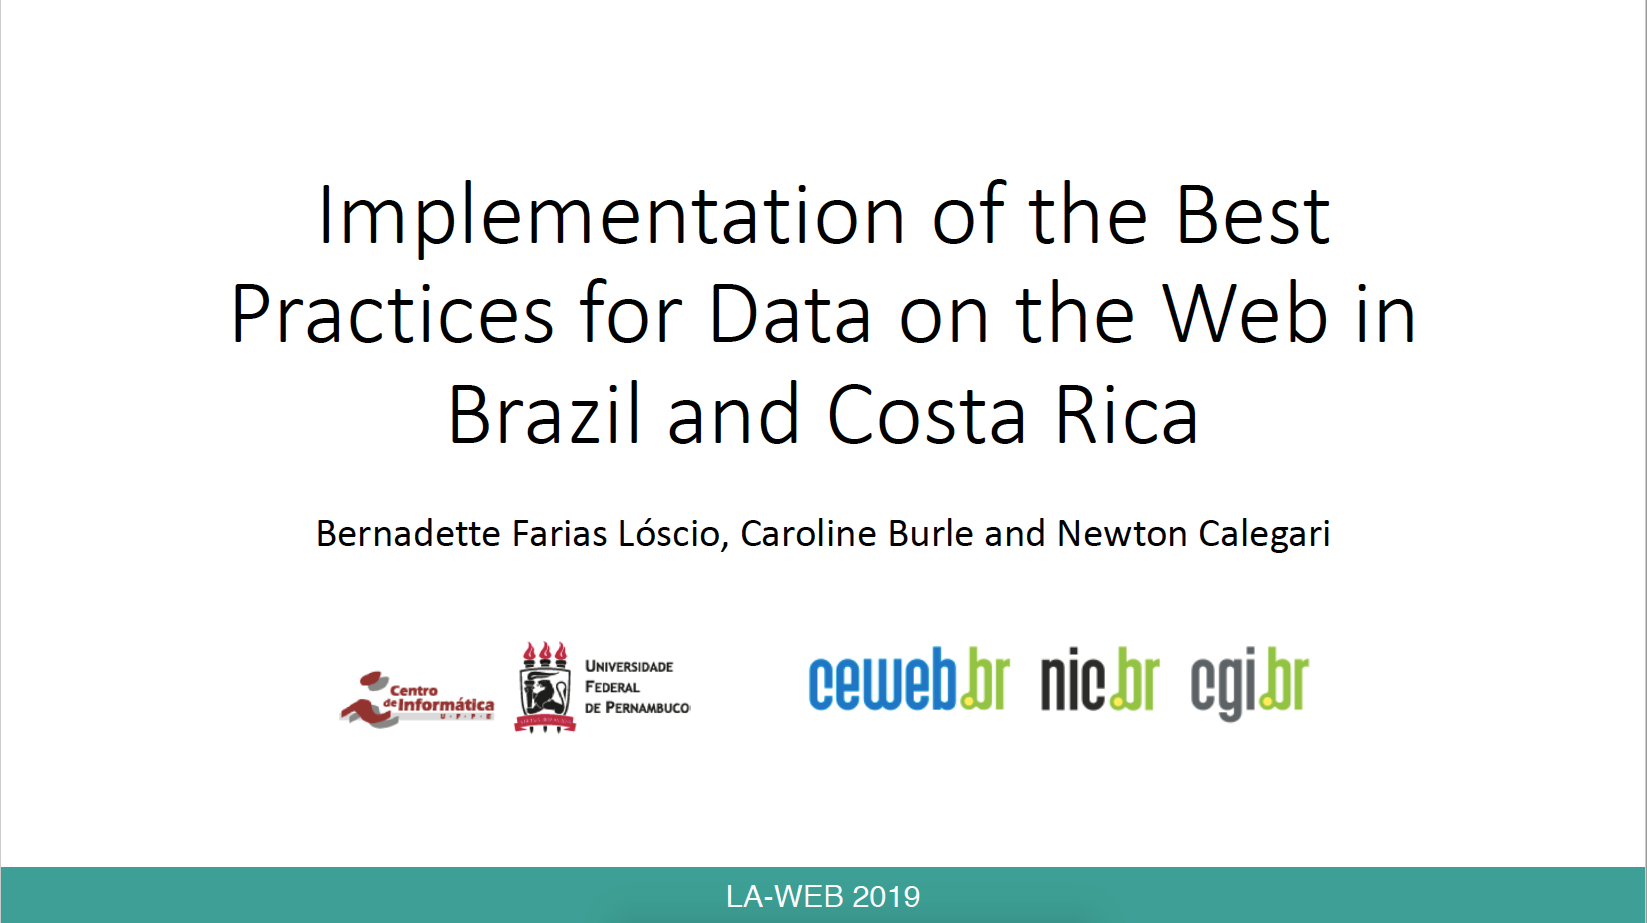 Implementation of the Best Practices for Data on theWeb in Brazil and Costa Rica